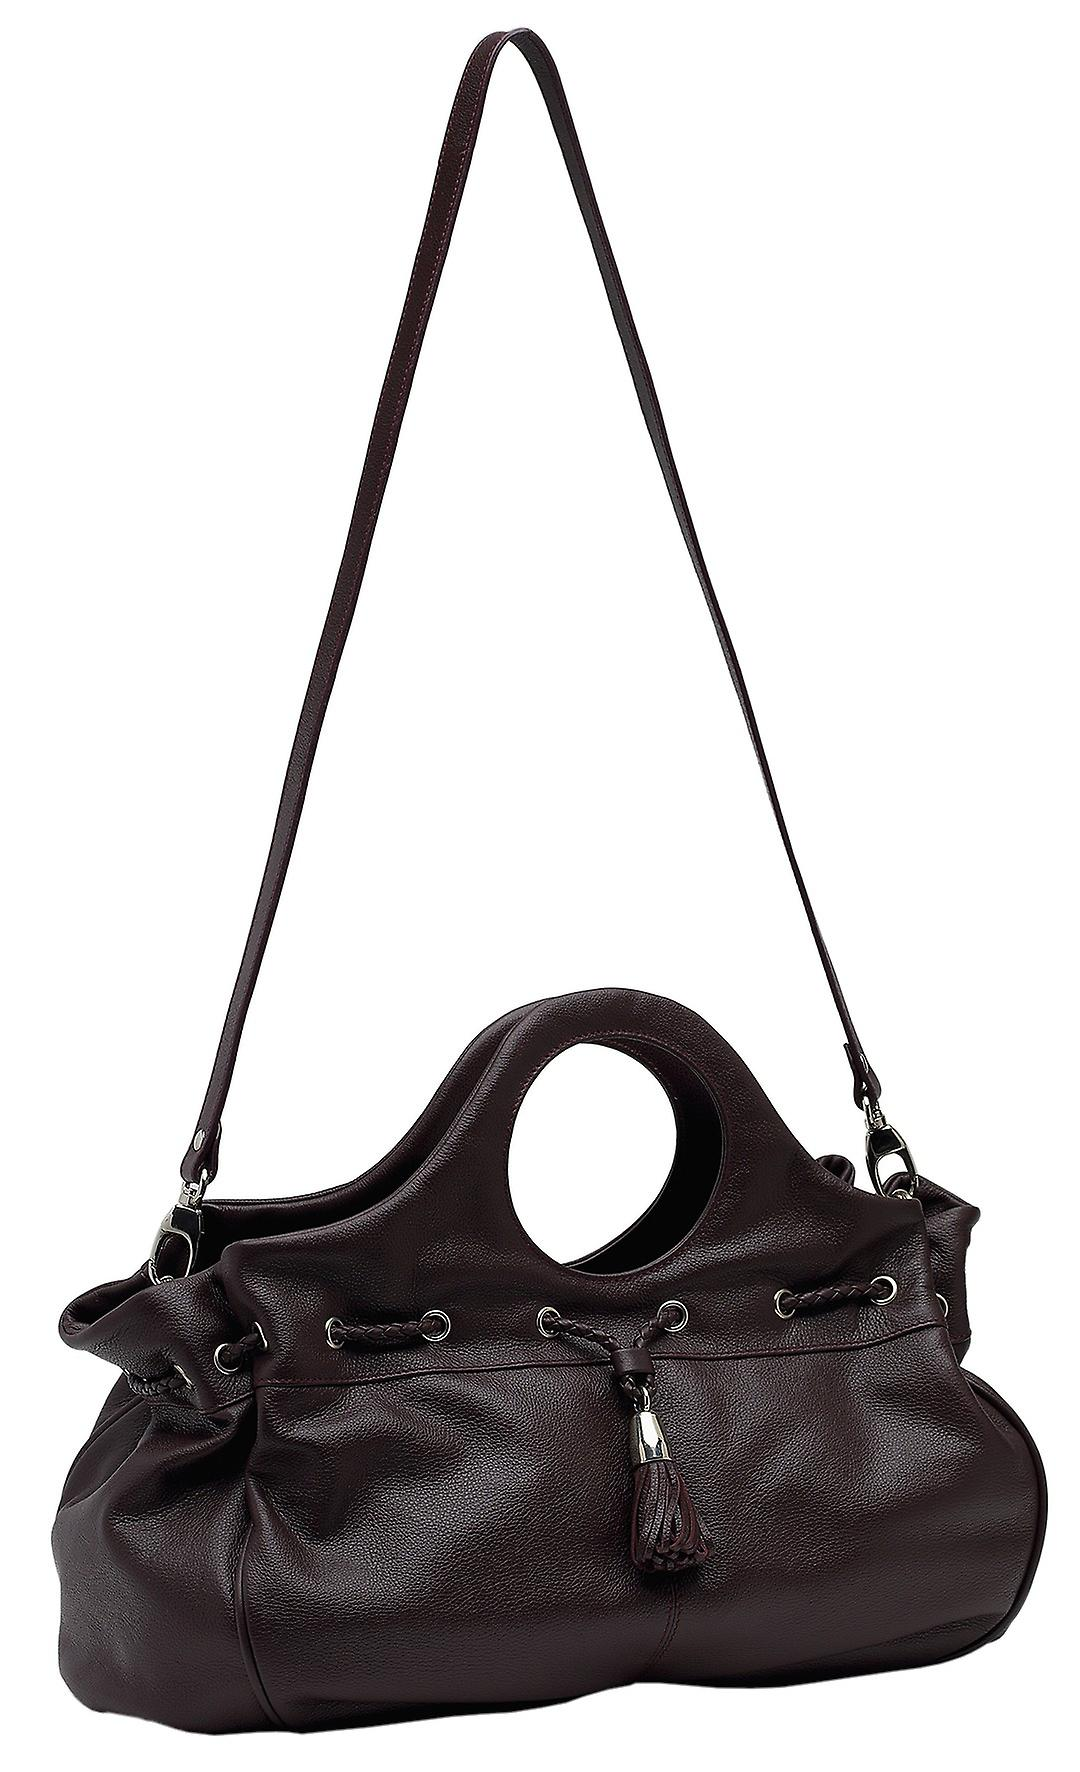 Burgmeister ladies bag T216-114A leather whine red